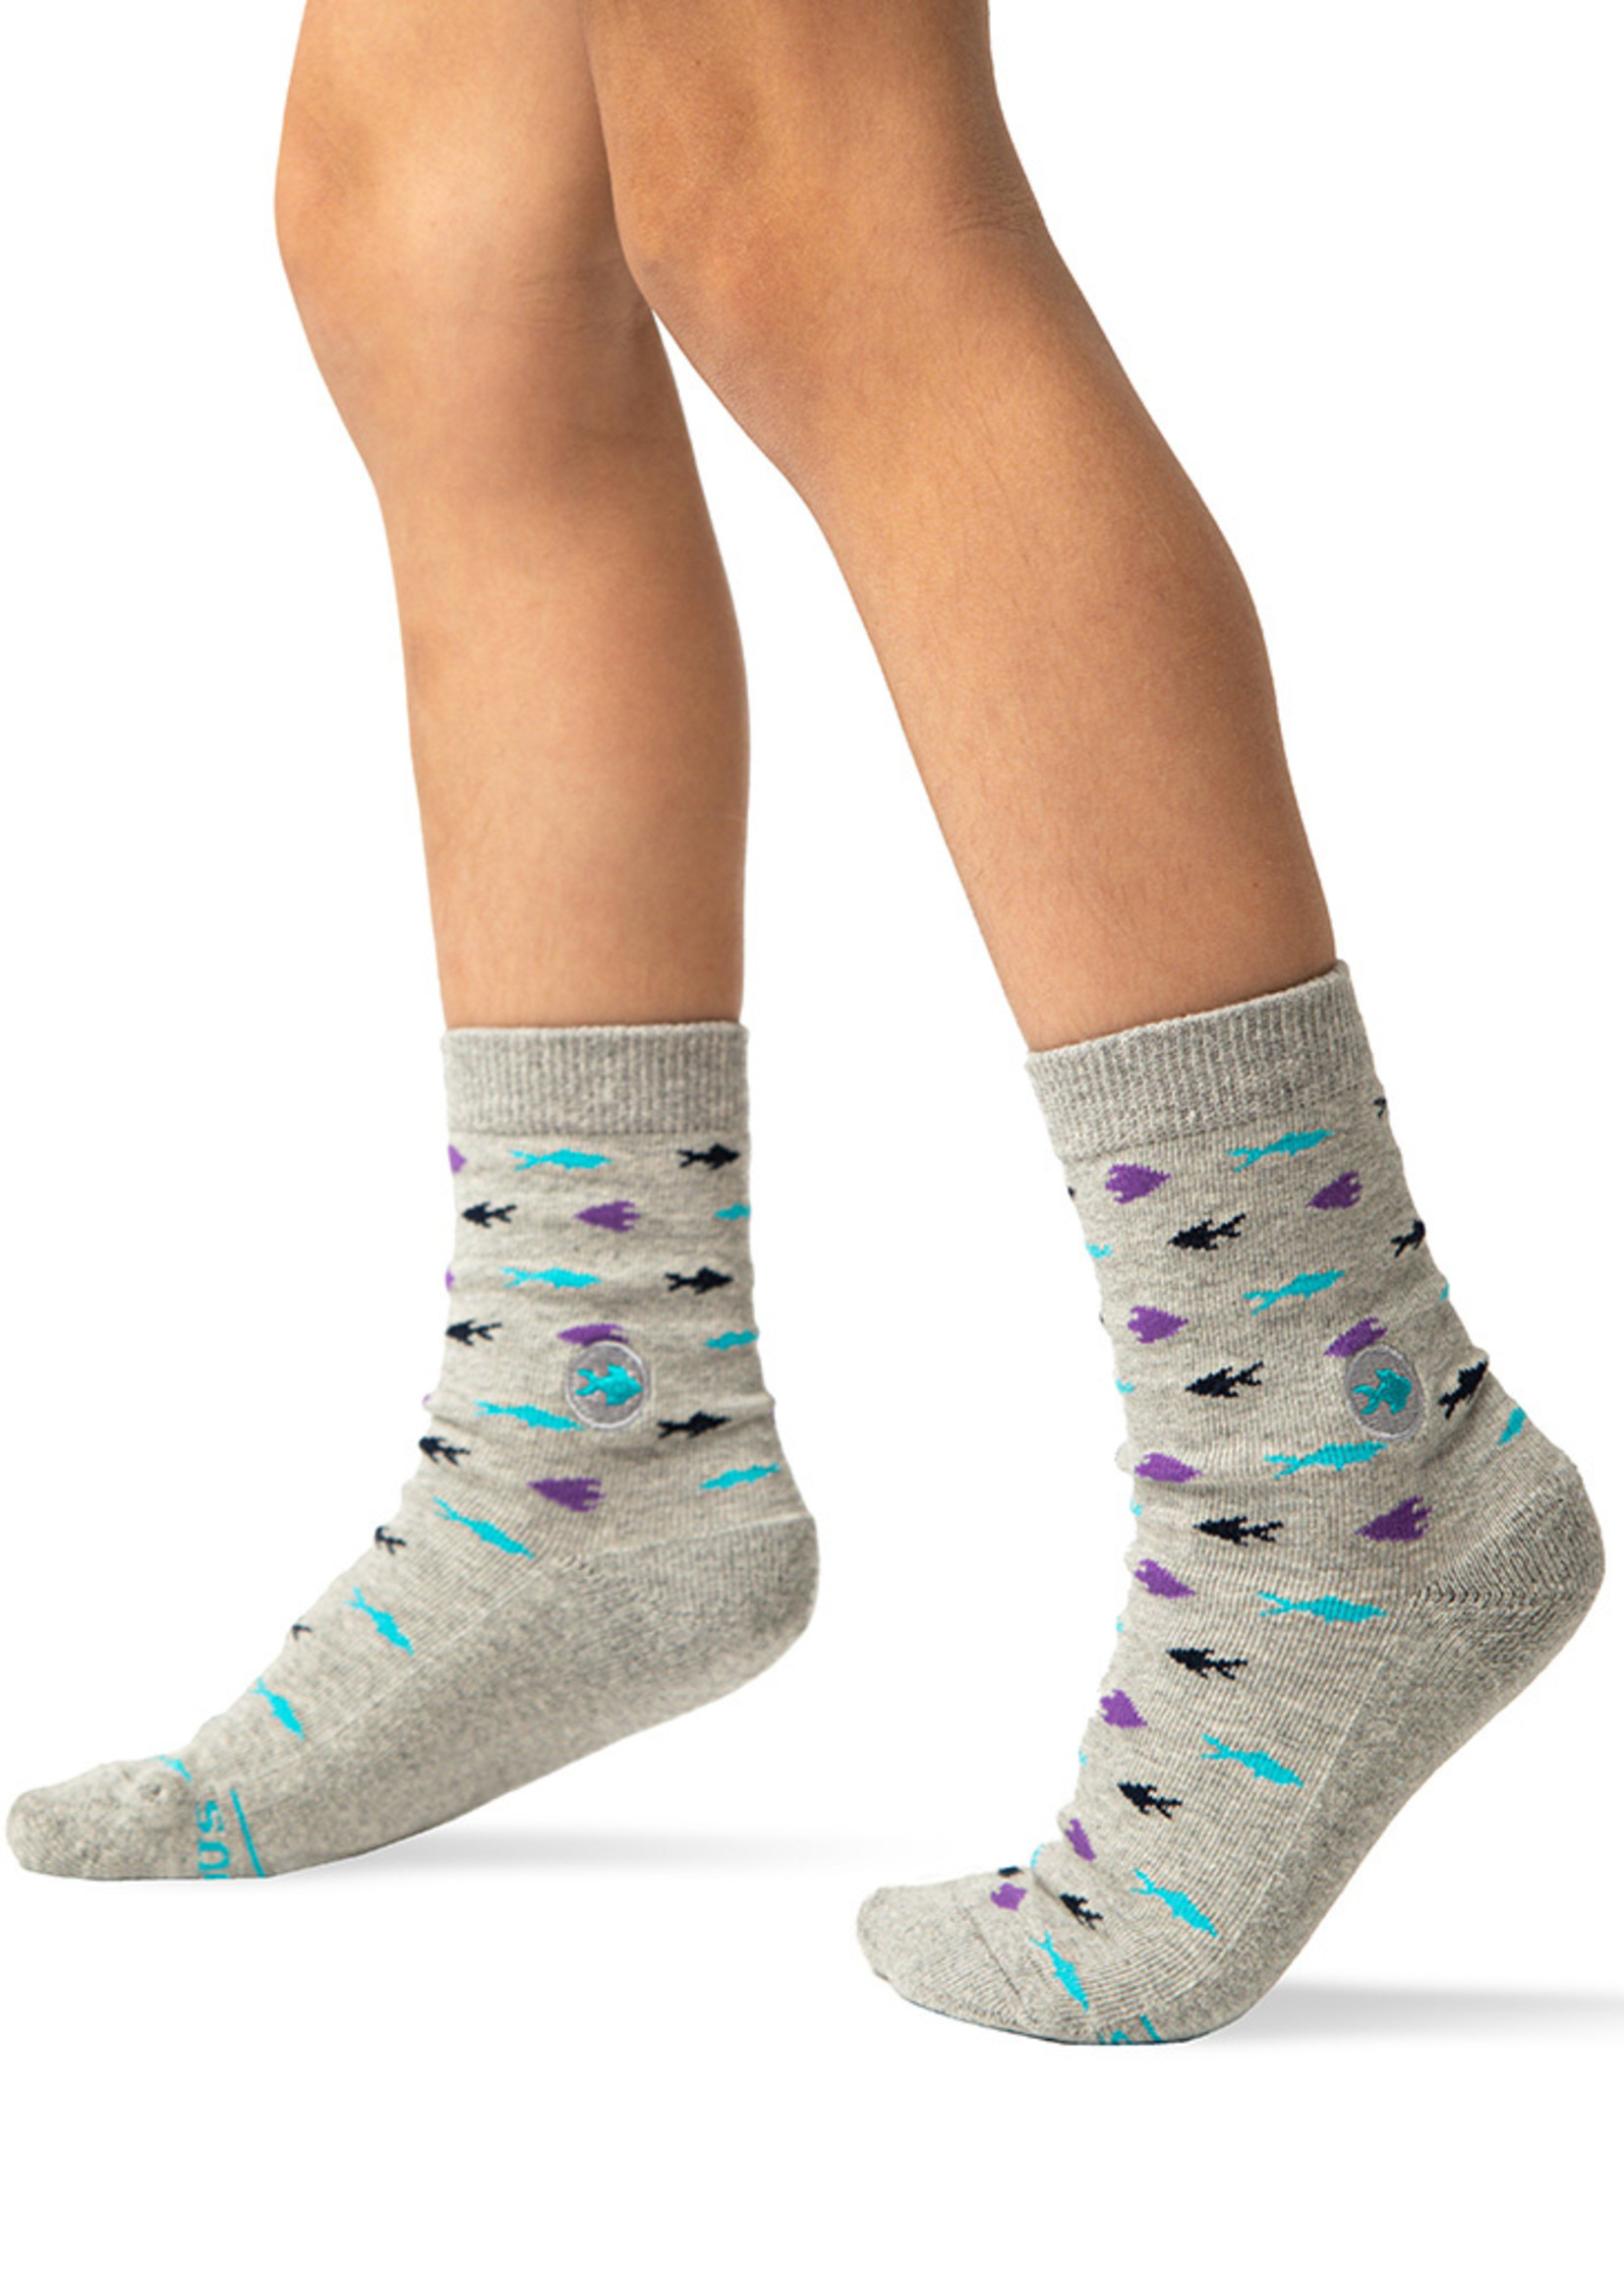 Conscious Step Kid's Sock Box Protects Oceans 7-10Y